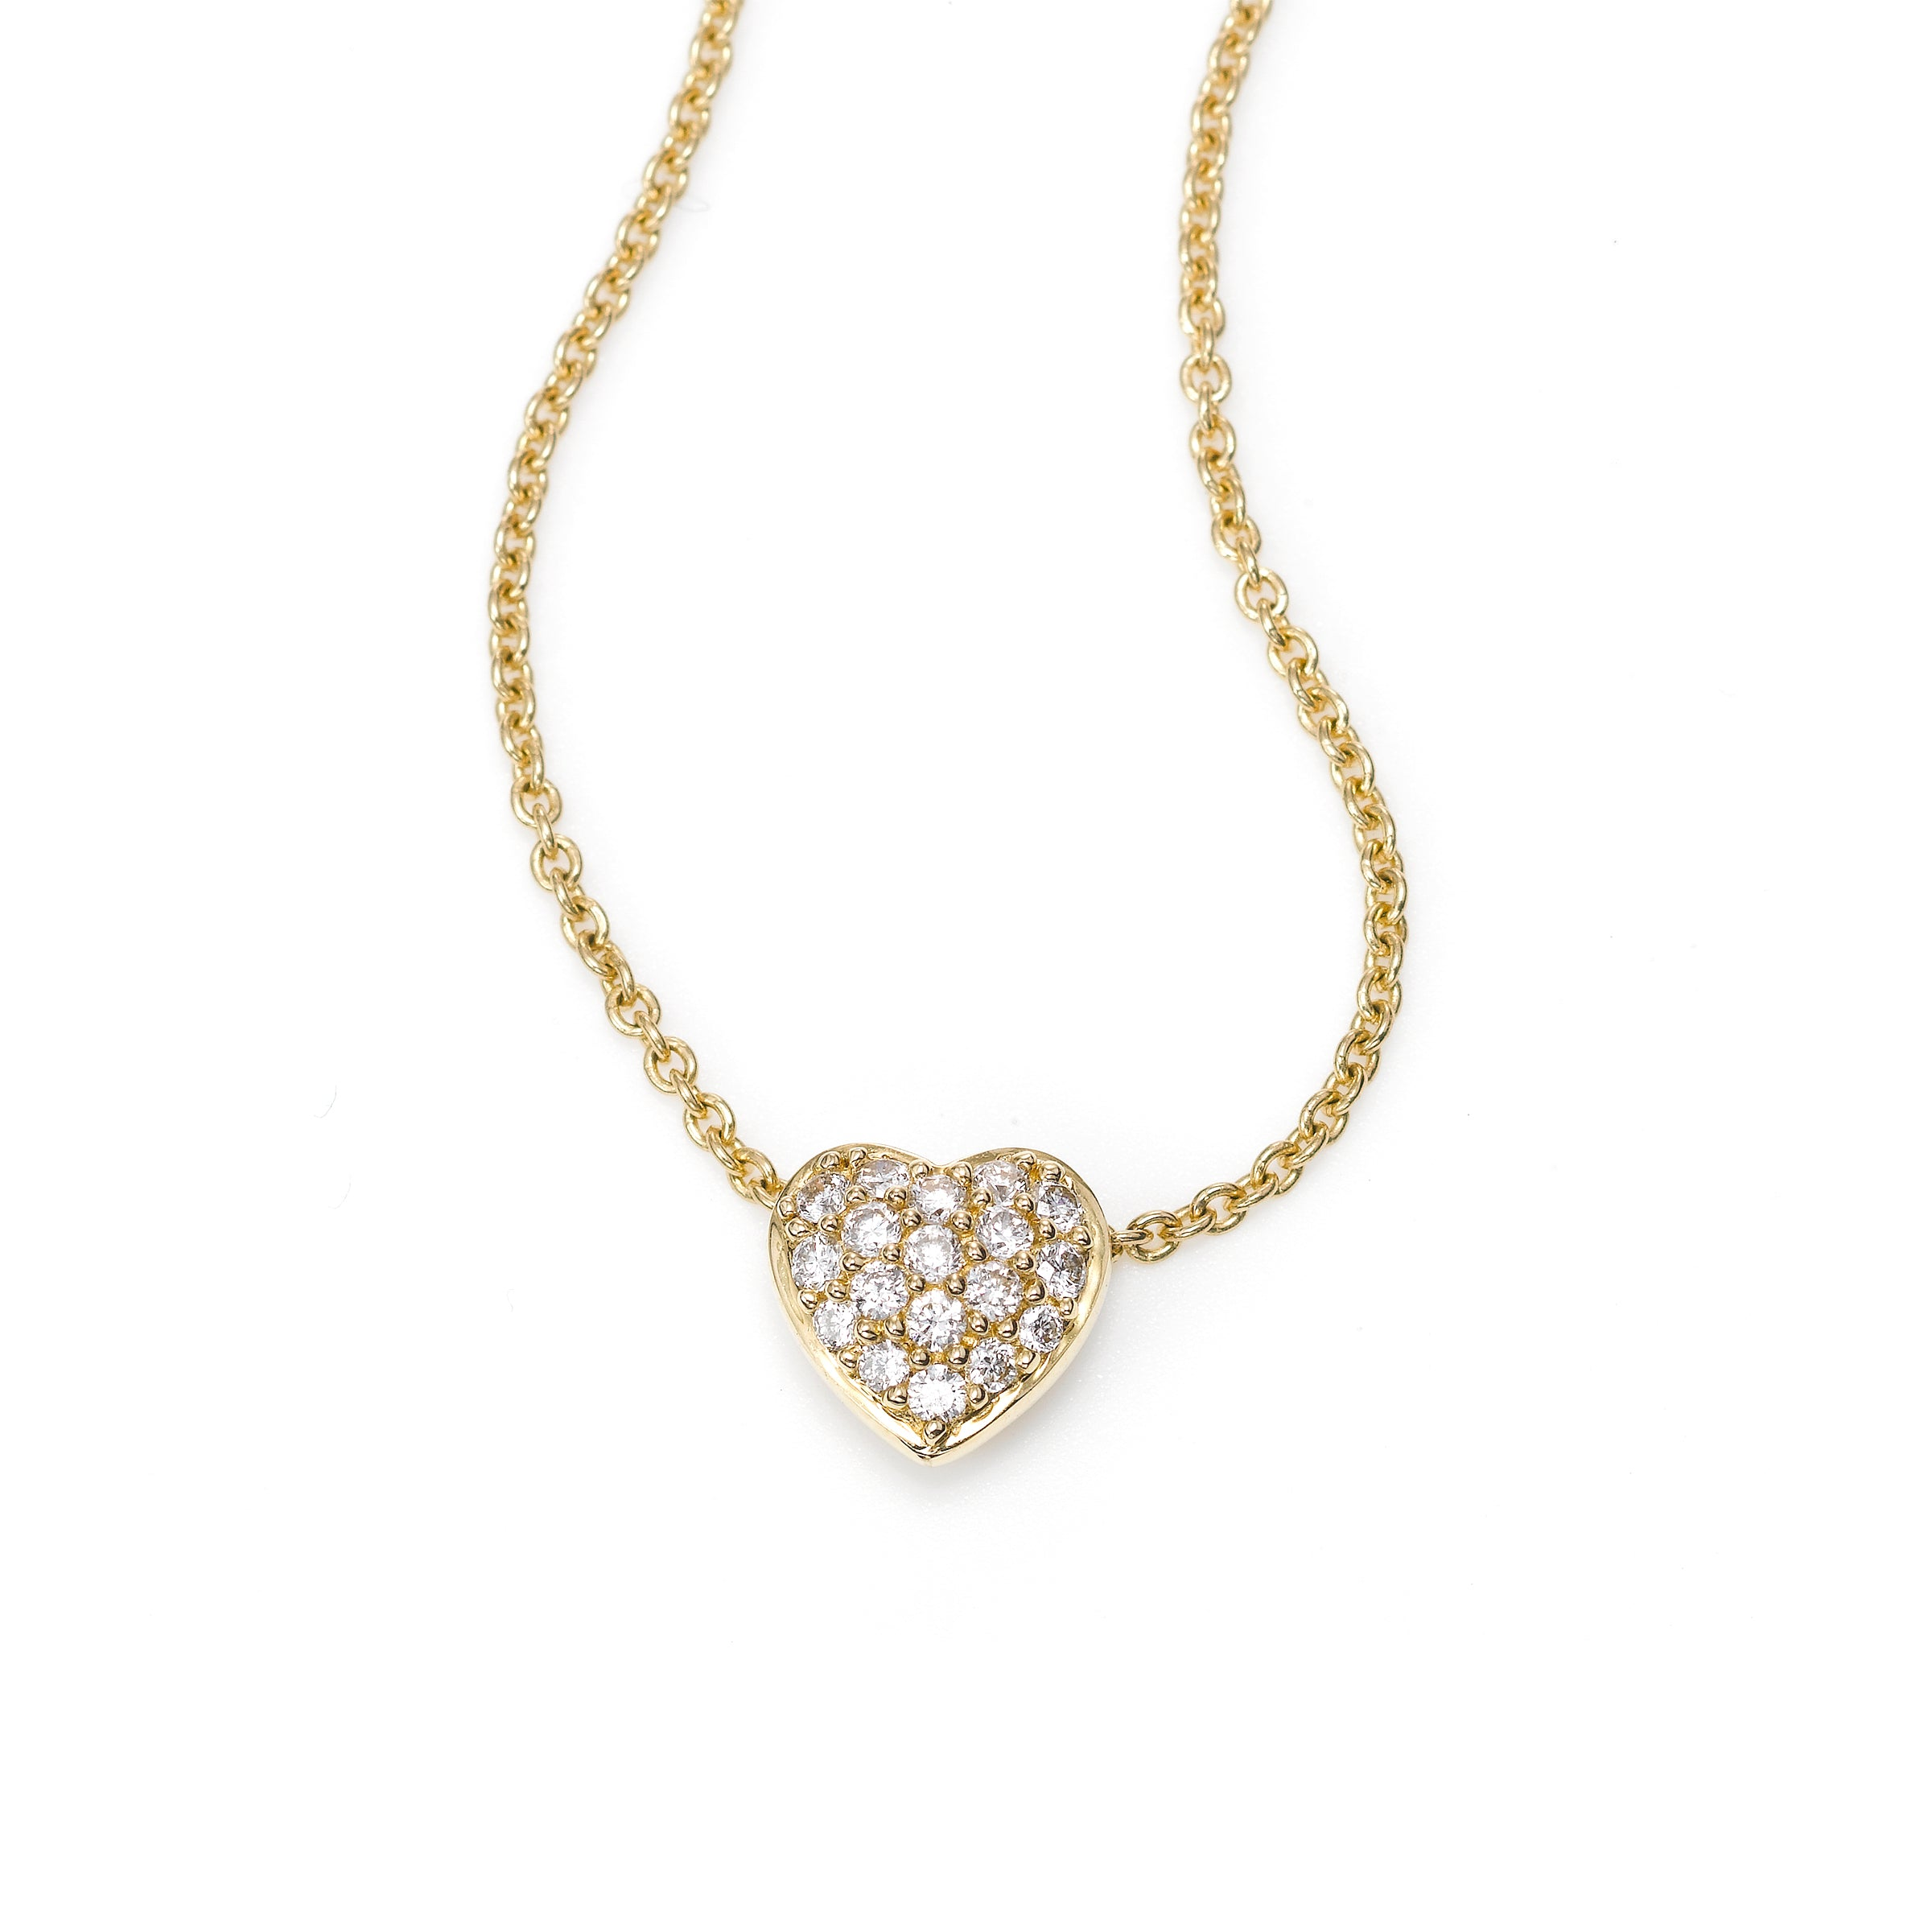 Small Pavé Diamond Heart Necklace, 14K Yellow Gold